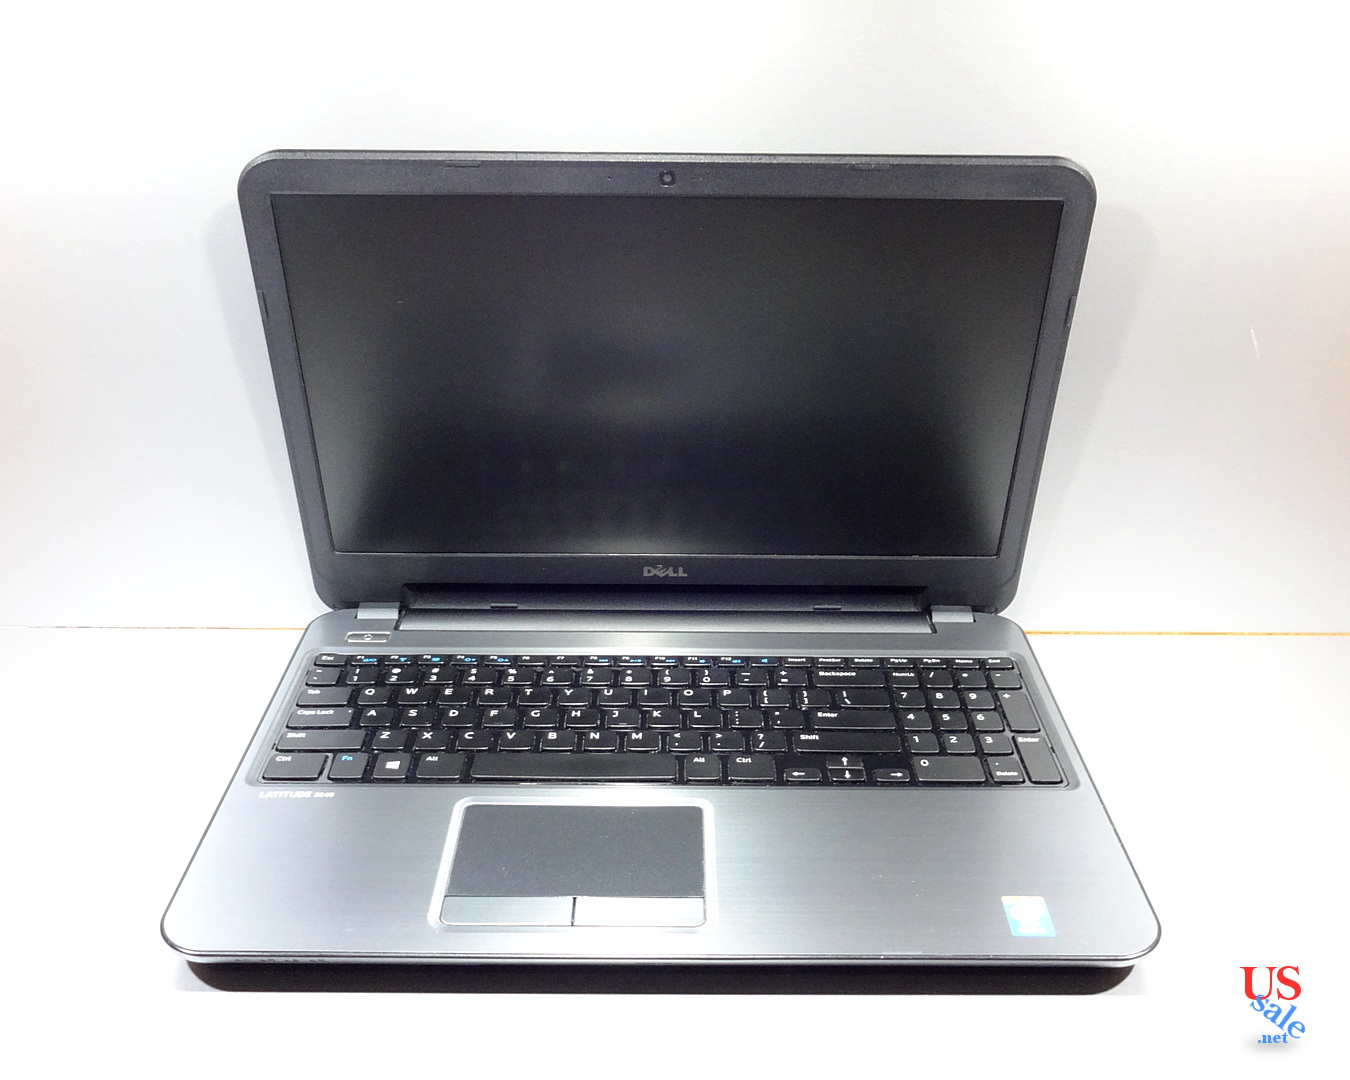 Toshiba-Satellite-C55-B5200-1300-real-2.jpg